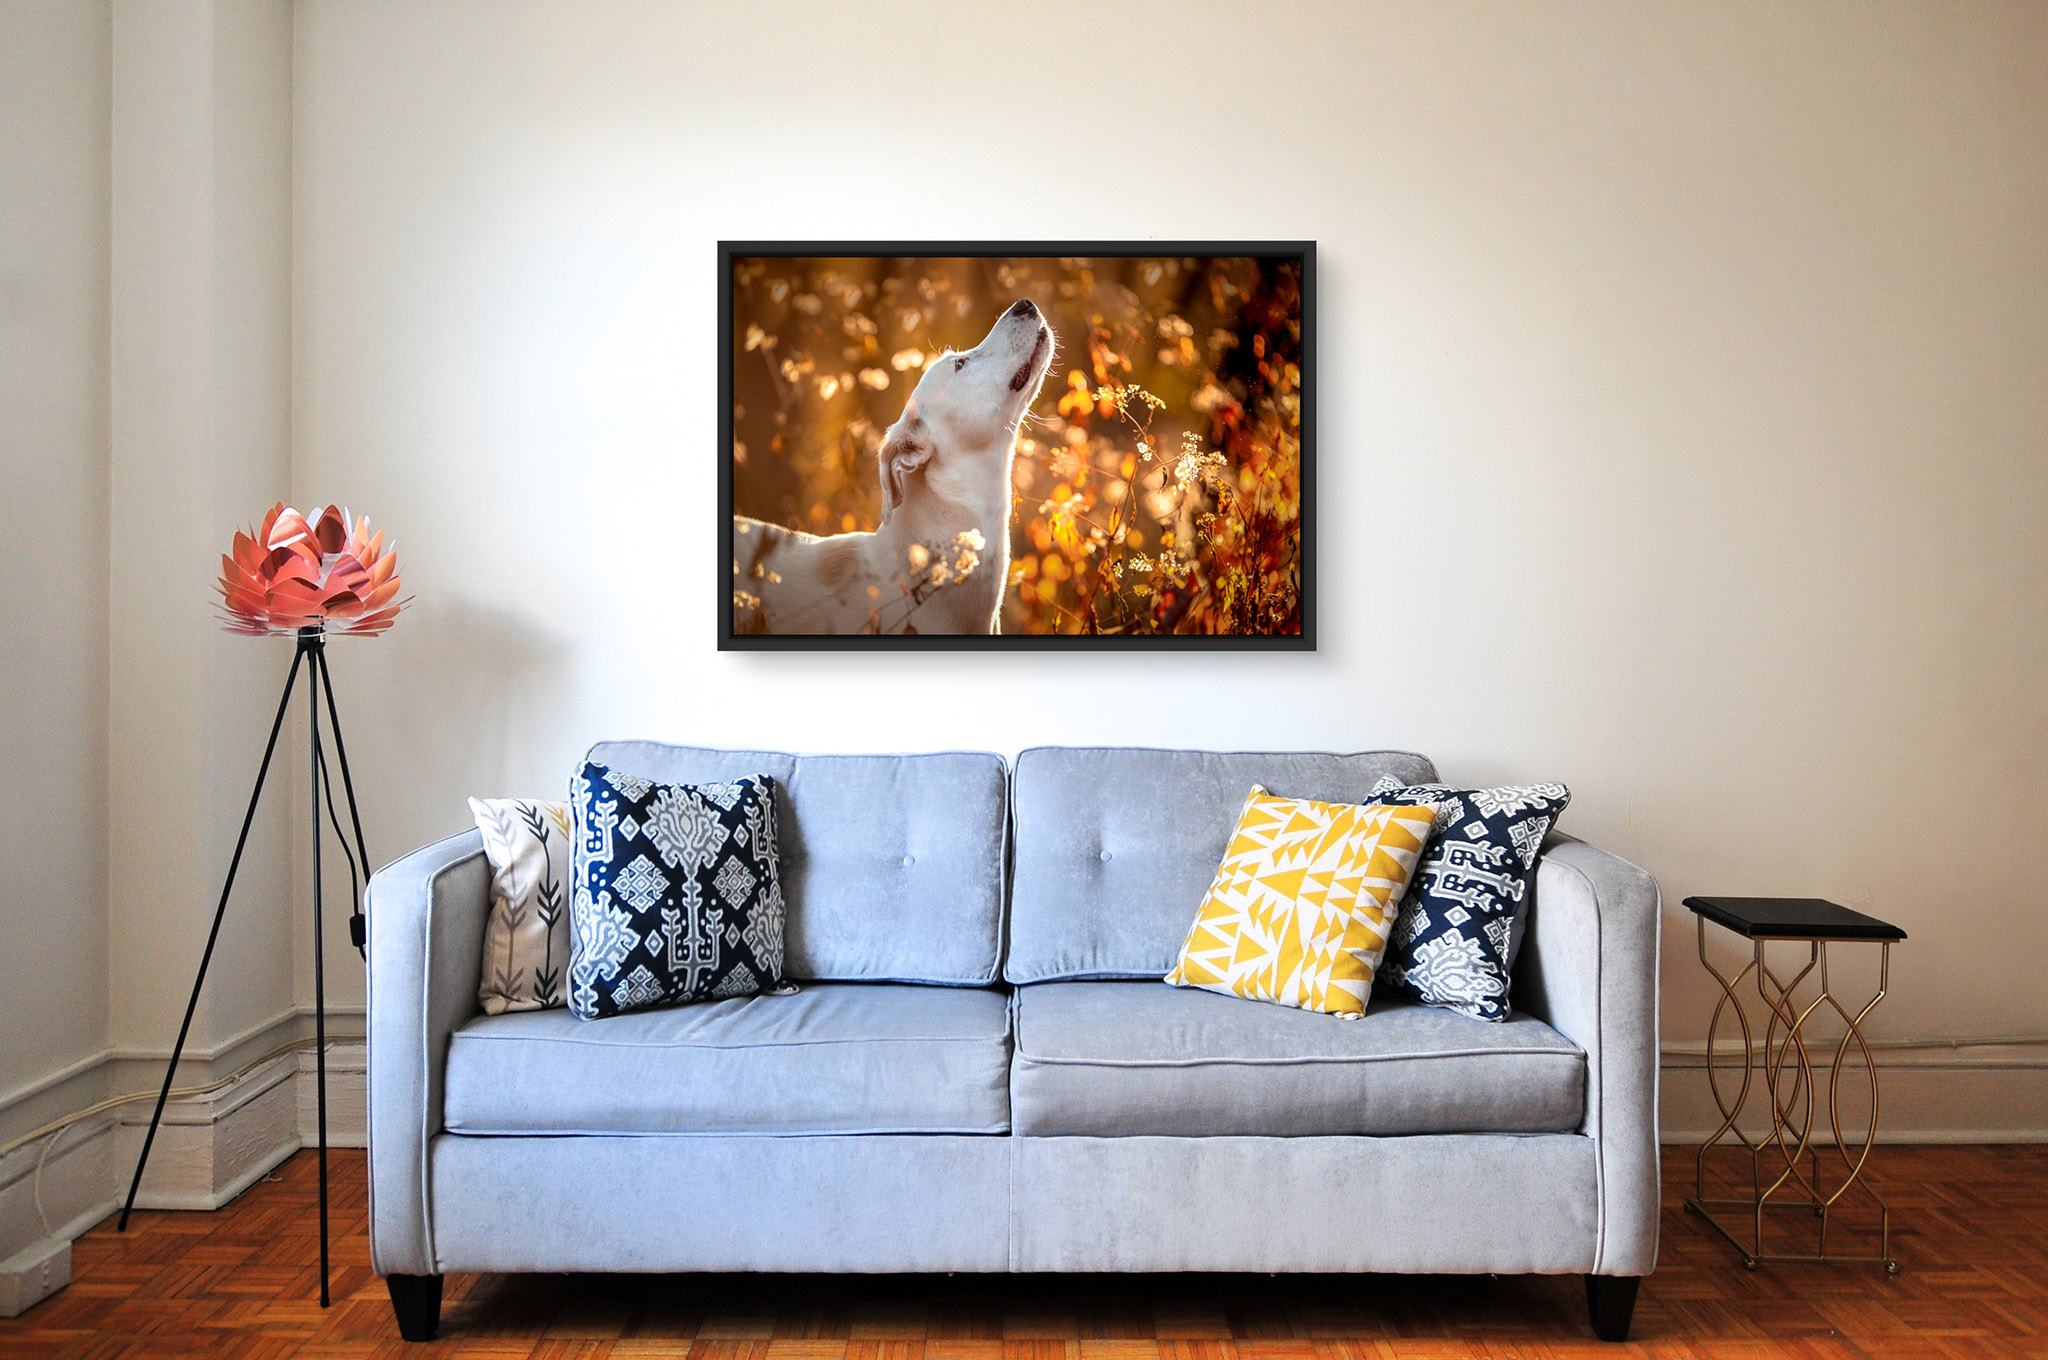 Wall Art - Choose from framed prints, framed canvases, metal prints and original oil paintings.Starting at $1000